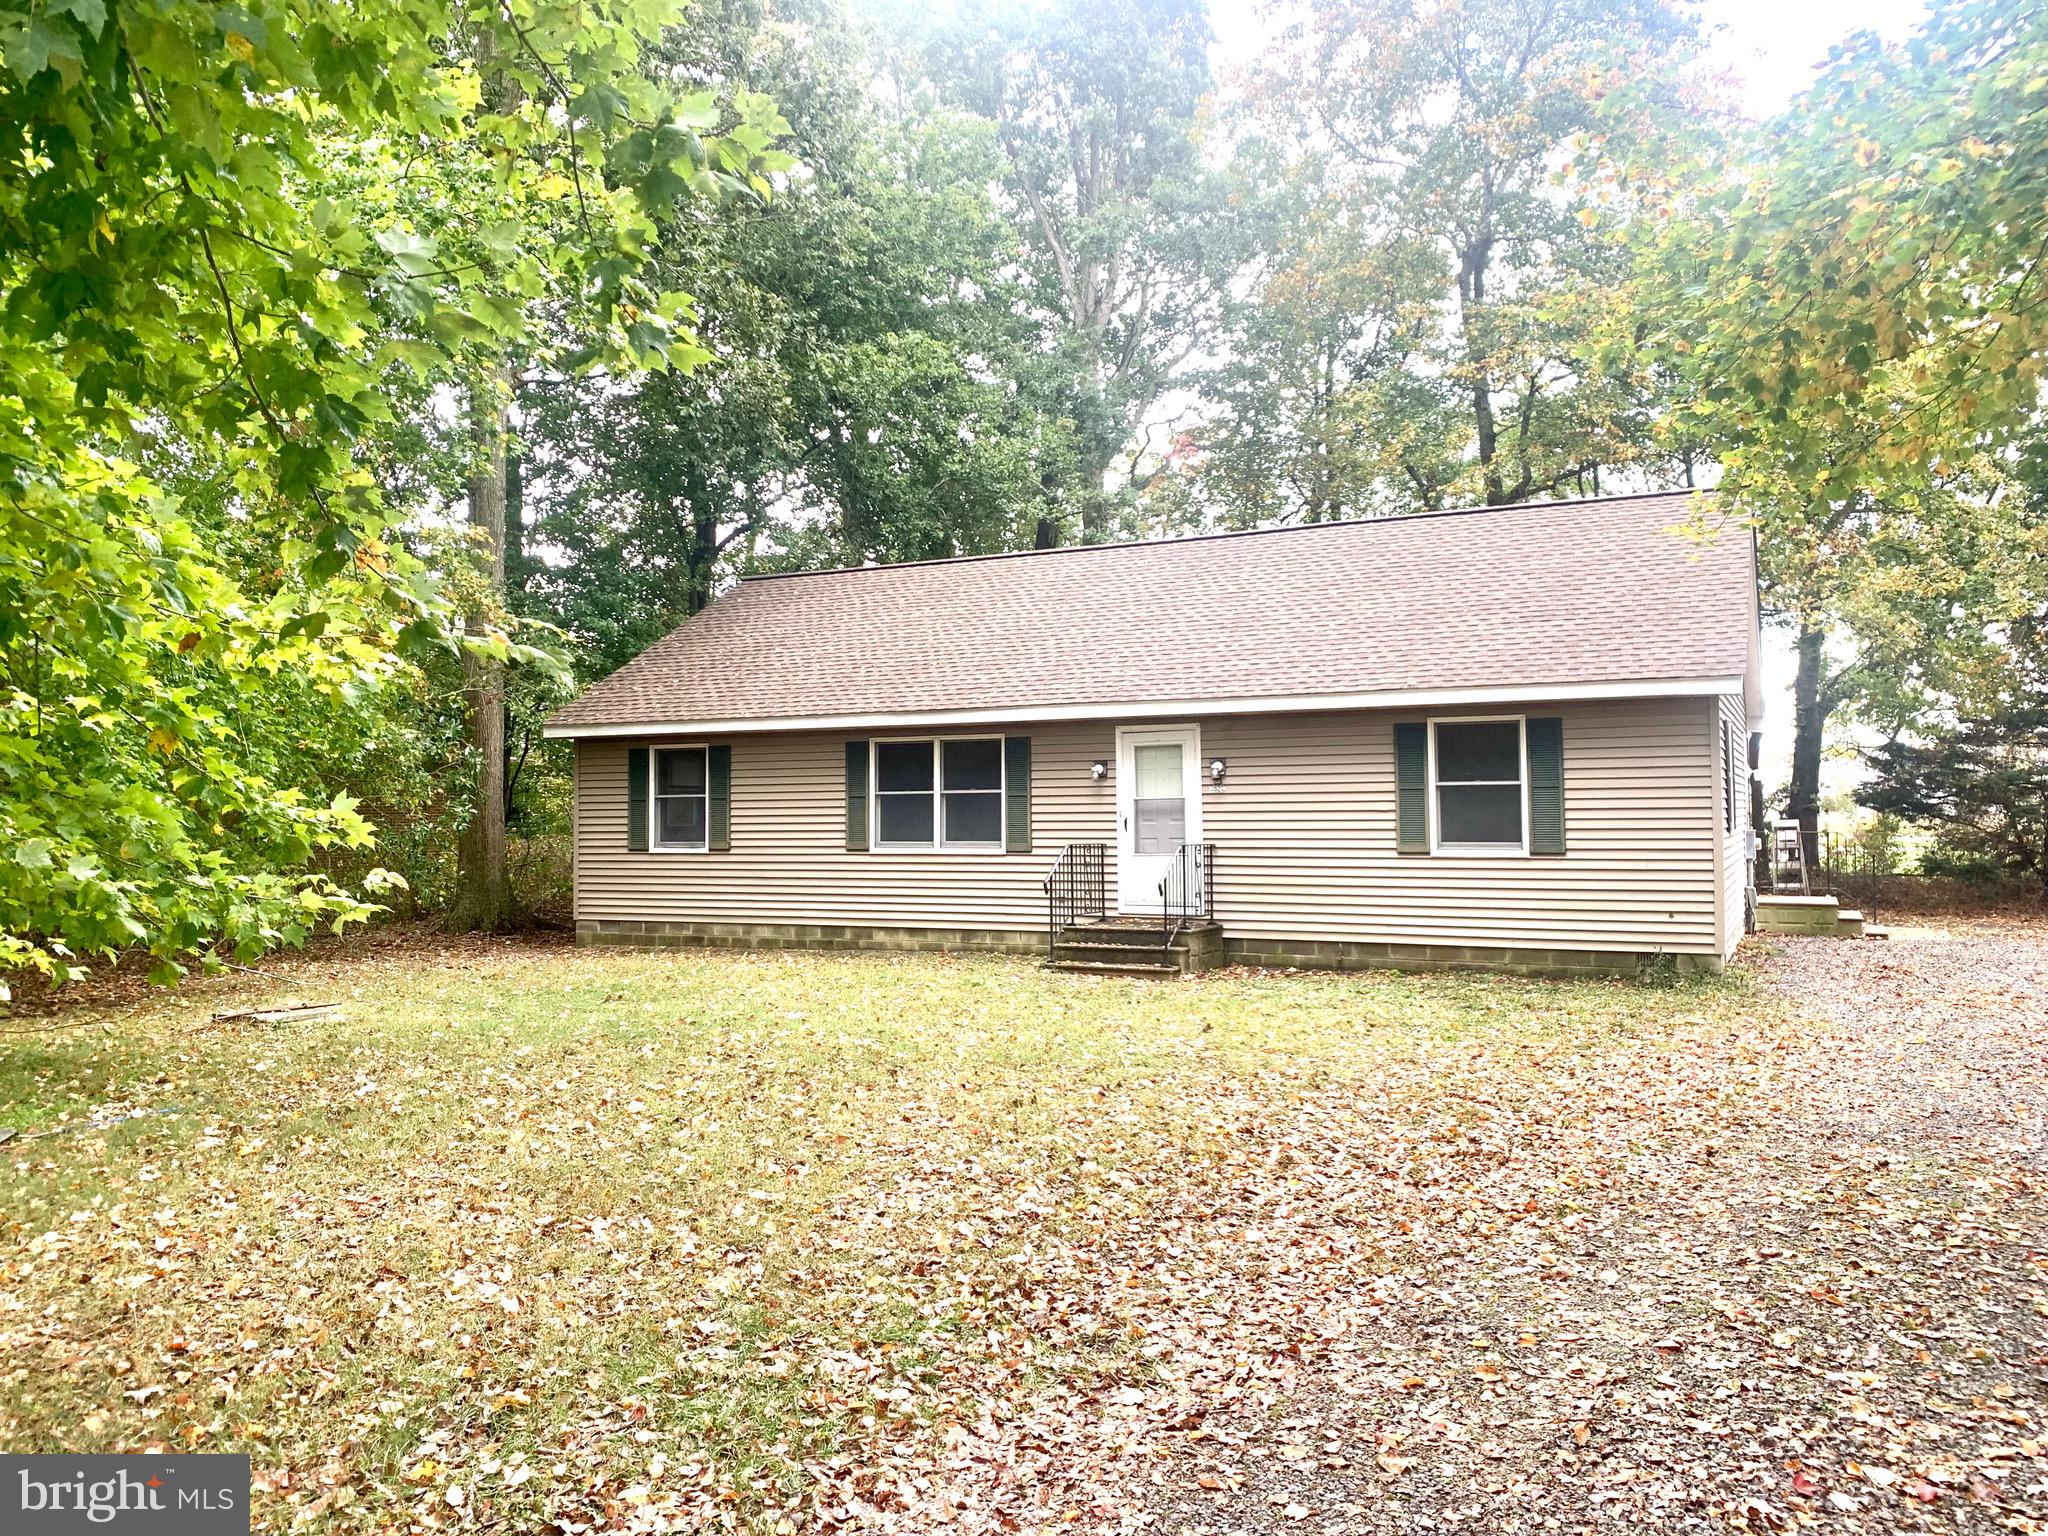 3 bedroom 2 bath home just minutes from Fenwick Island , Ocean City Md, and Bethany Beach. Nestled o